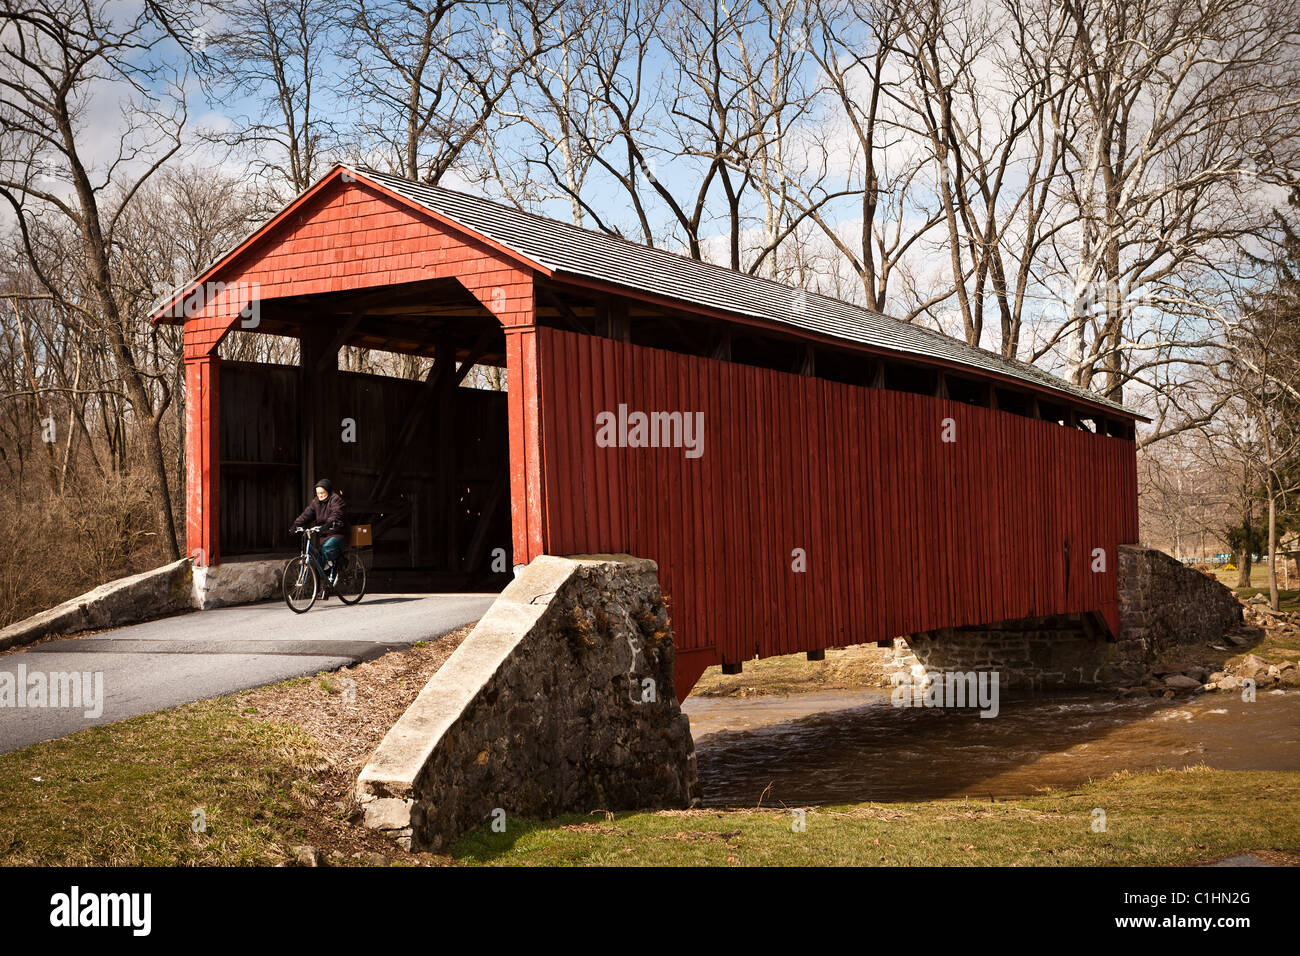 Amish women rides her bike through Pool Forge Covered Bridge Caernarvon Township, PA - Stock Image